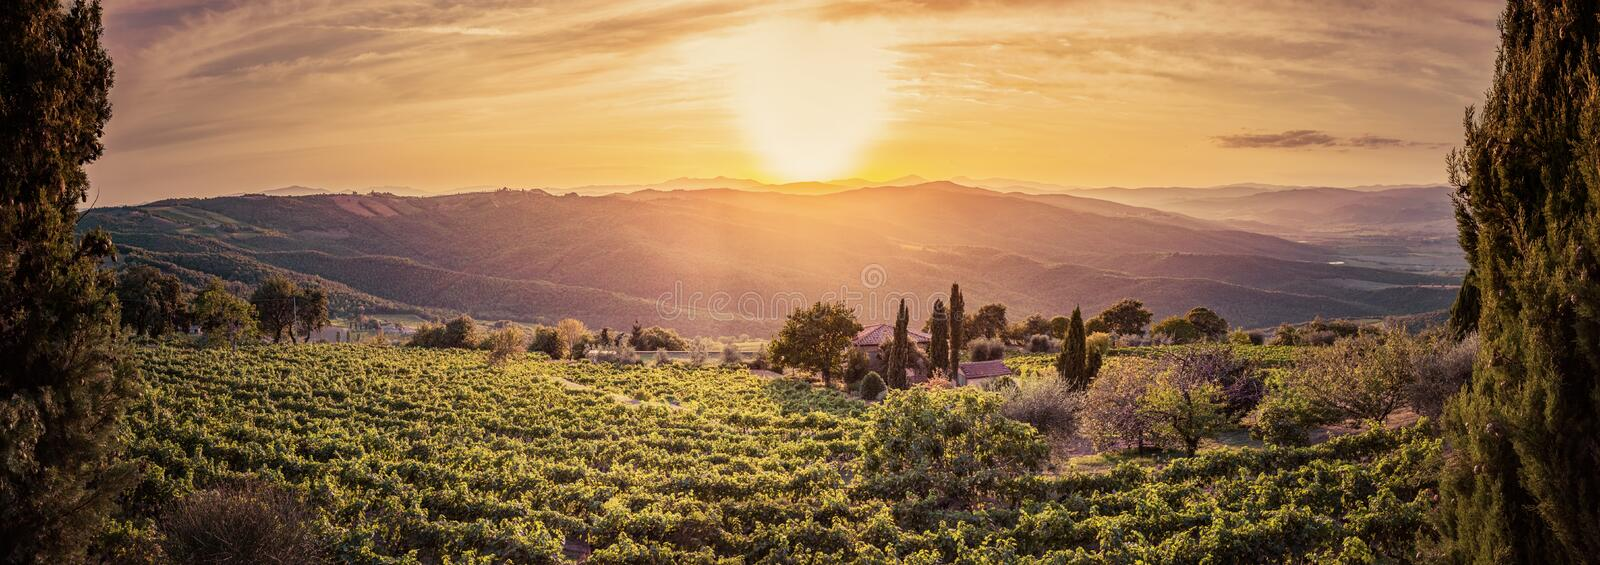 Vineyard landscape panorama in Tuscany, Italy. Wine farm at sunset stock images